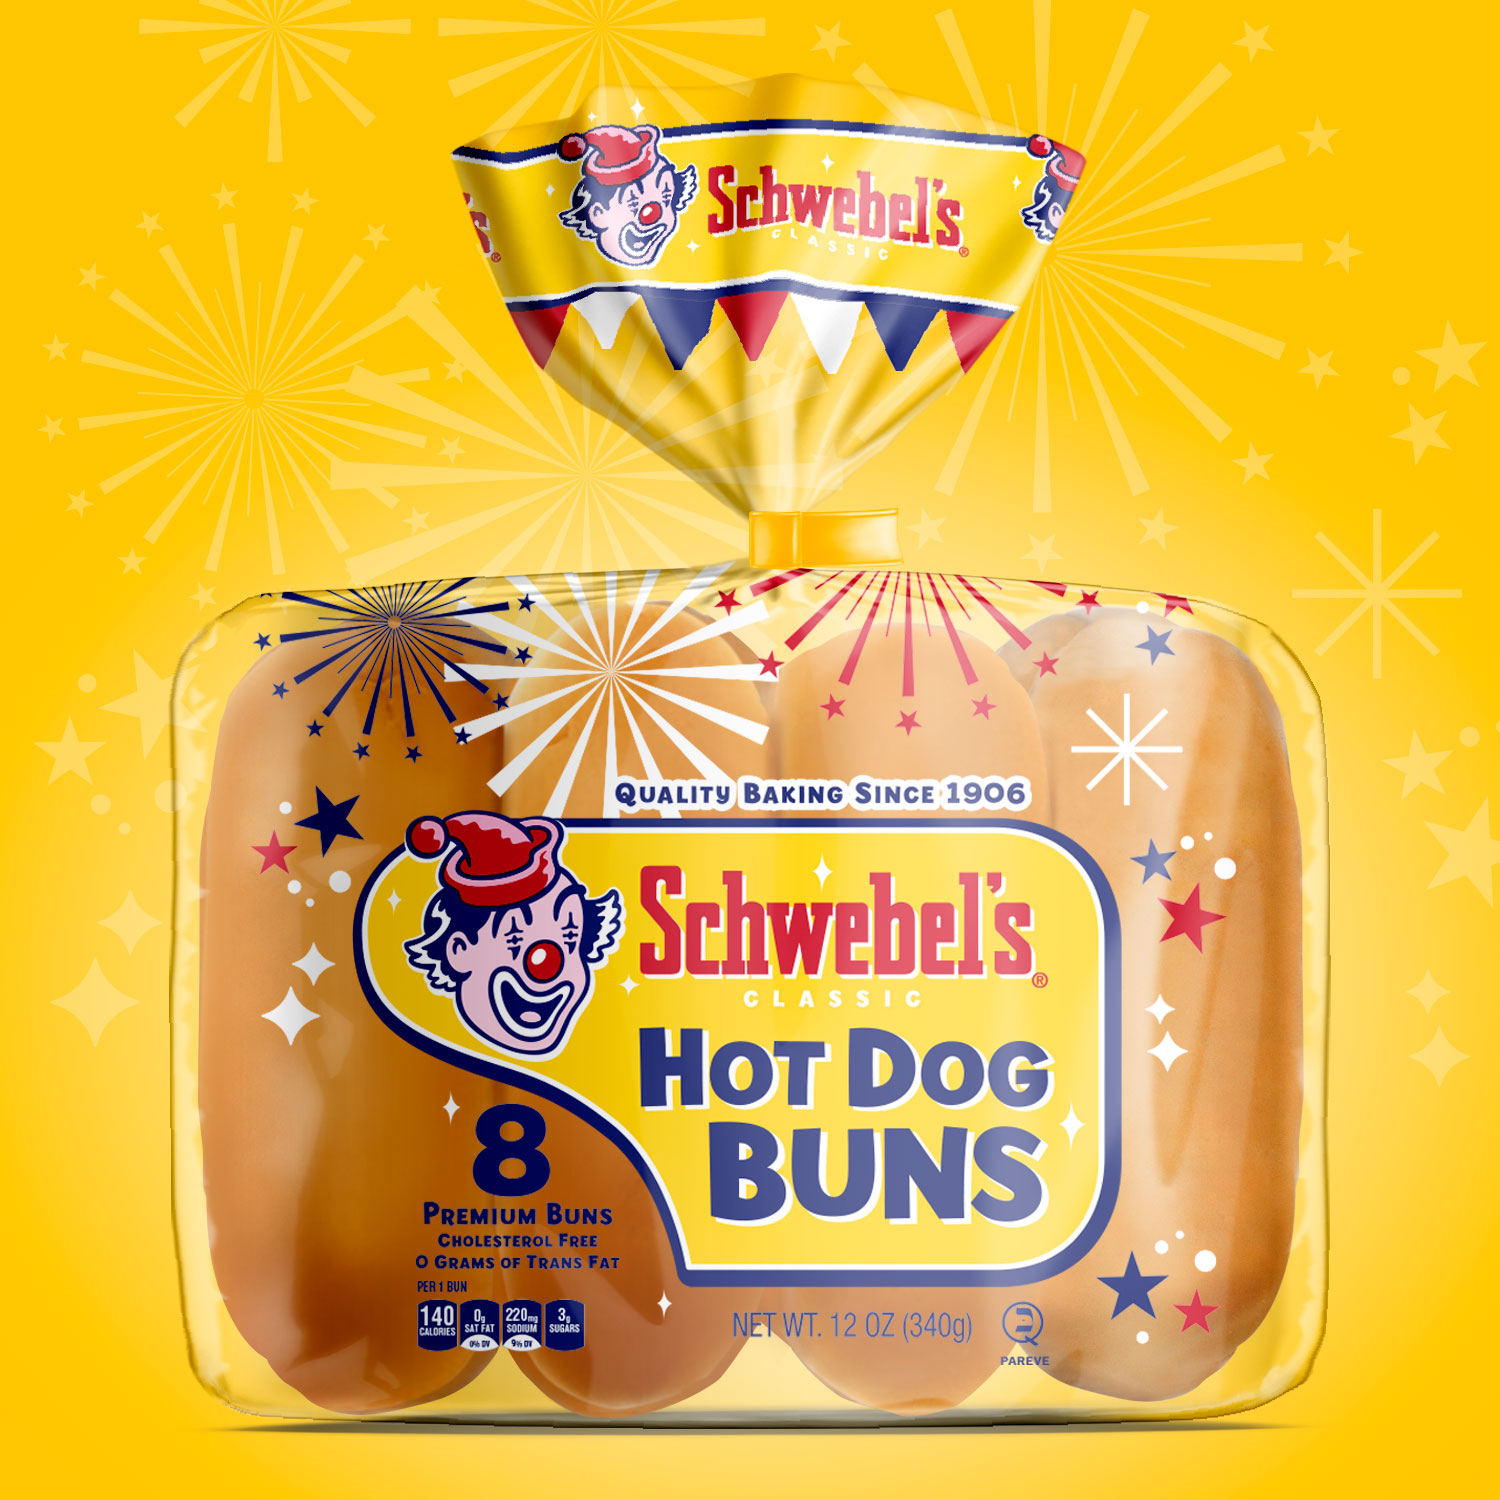 Schwebel's Summer Buns